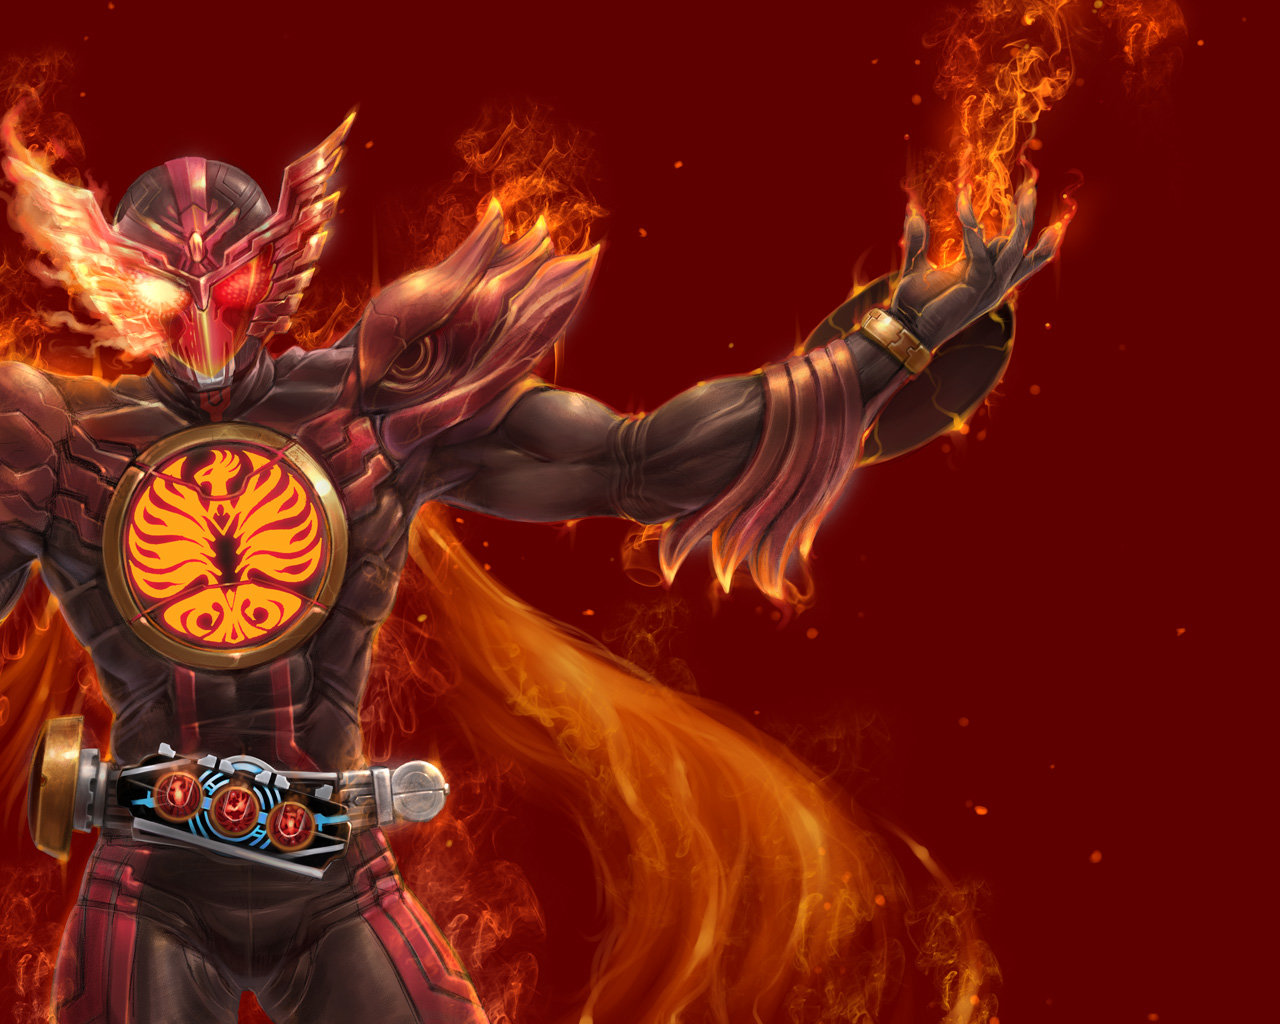 Free Kamen Rider Ooo high quality wallpaper ID:340185 for hd 1280x1024 desktop